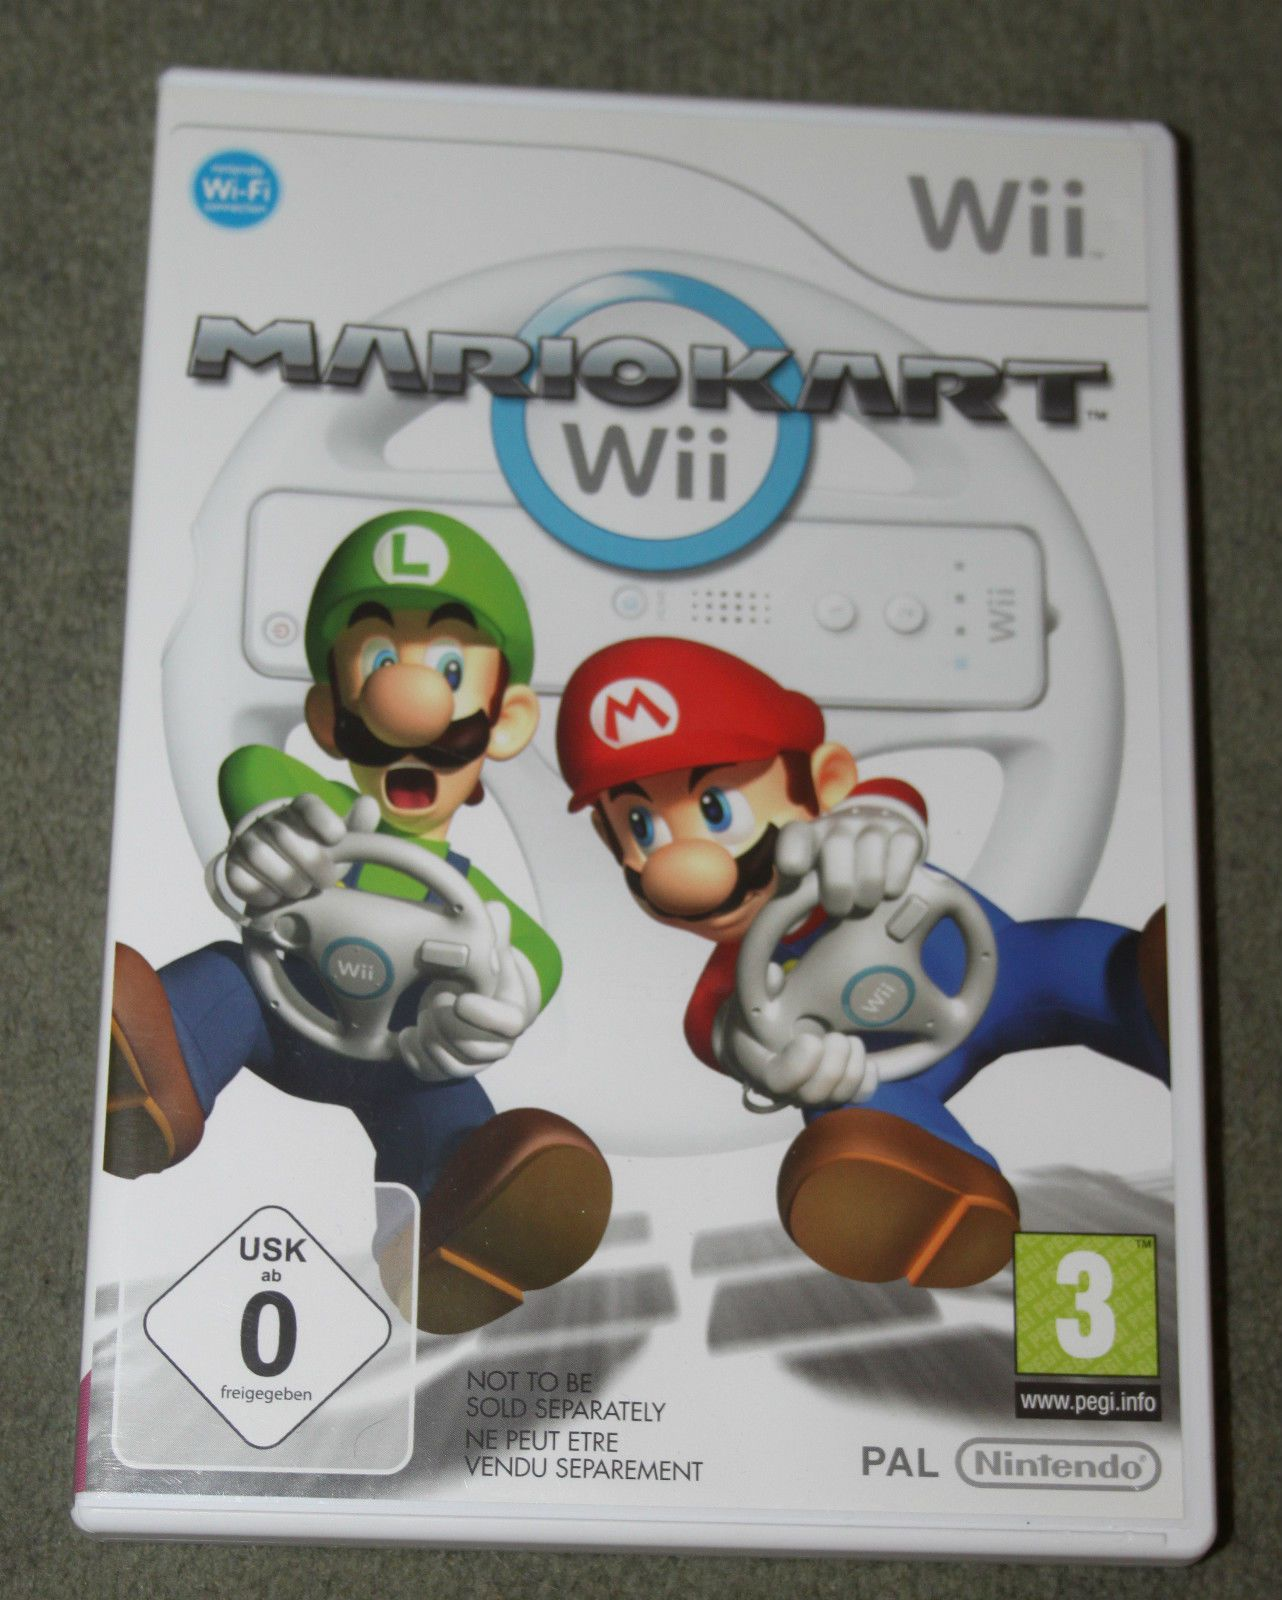 Mario Kart Nintendo Wii With Wheel Game Instructions Original Box PAL  Edition in Video Games & Consoles, Games | eBay